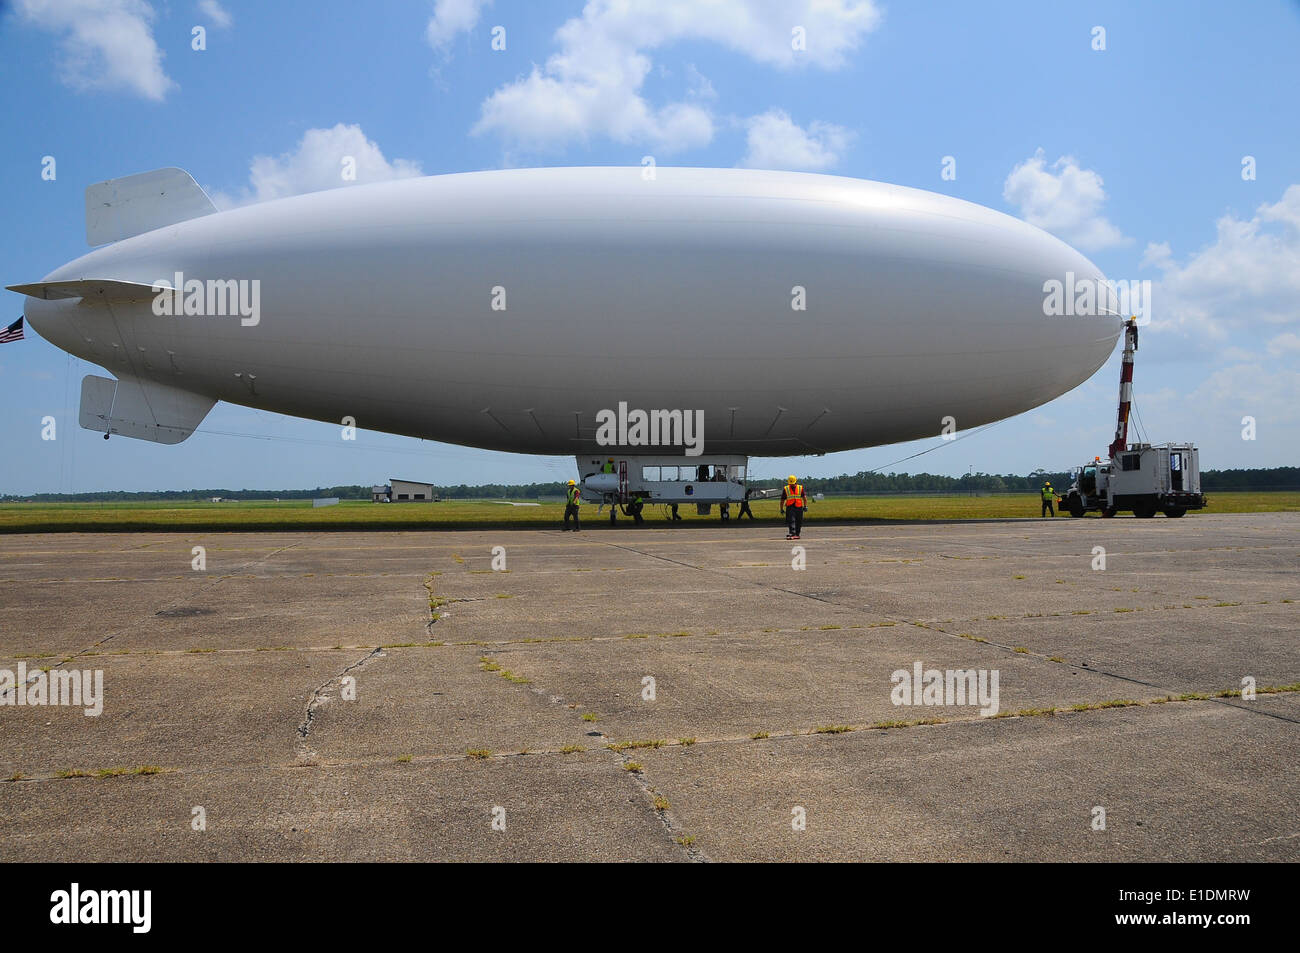 A U.S. Navy MZ-3A manned airship, Advanced Airship Flying Laboratory, derived from the commercial A-170 series blimp, Stock Photo